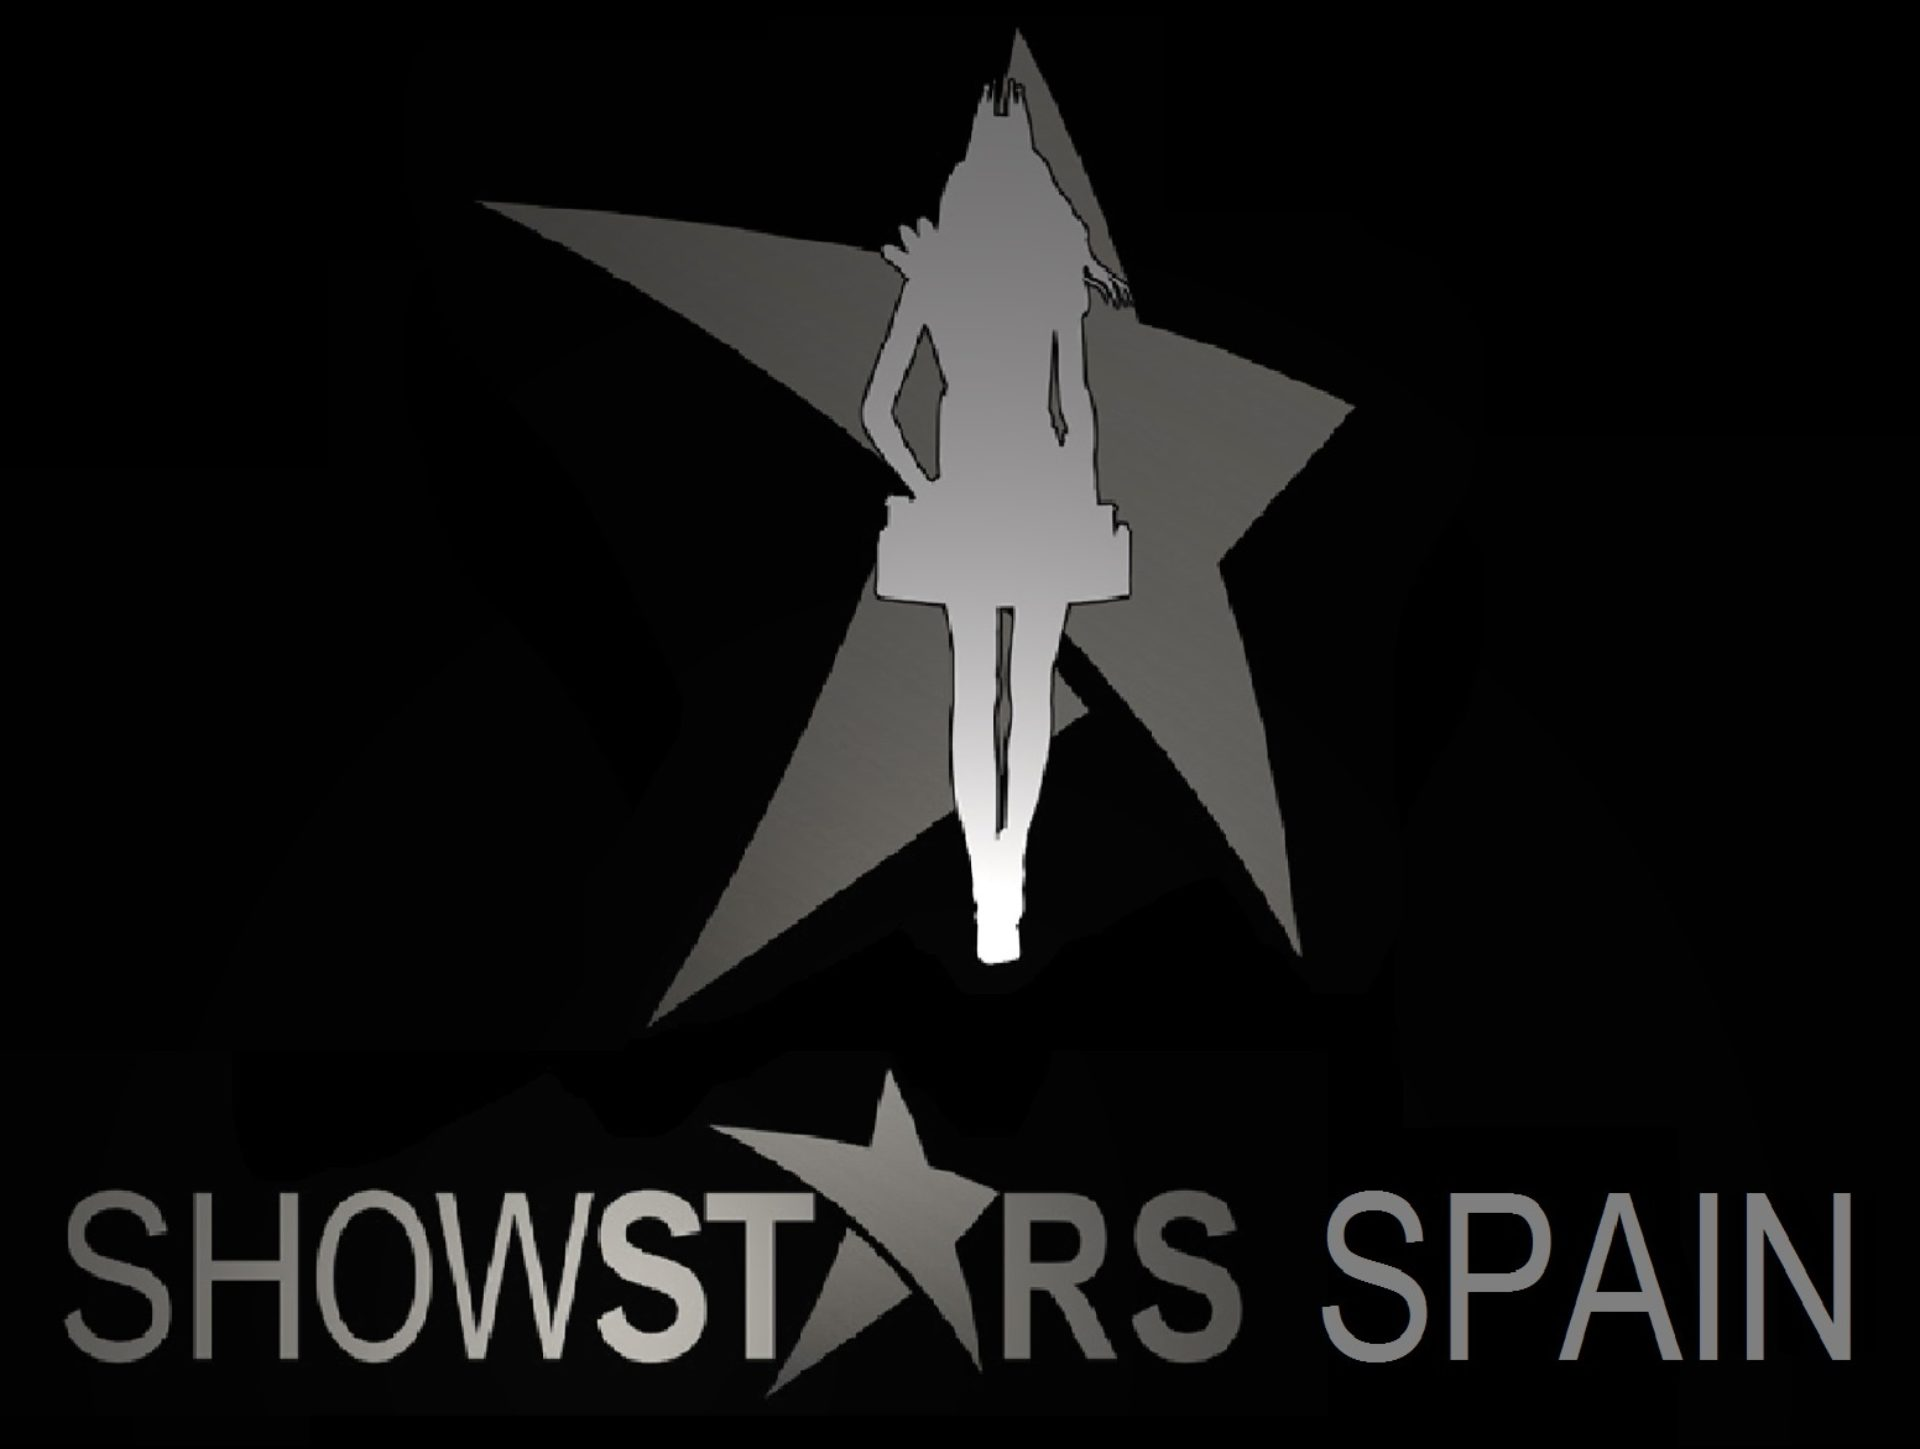 SHOWSTARS